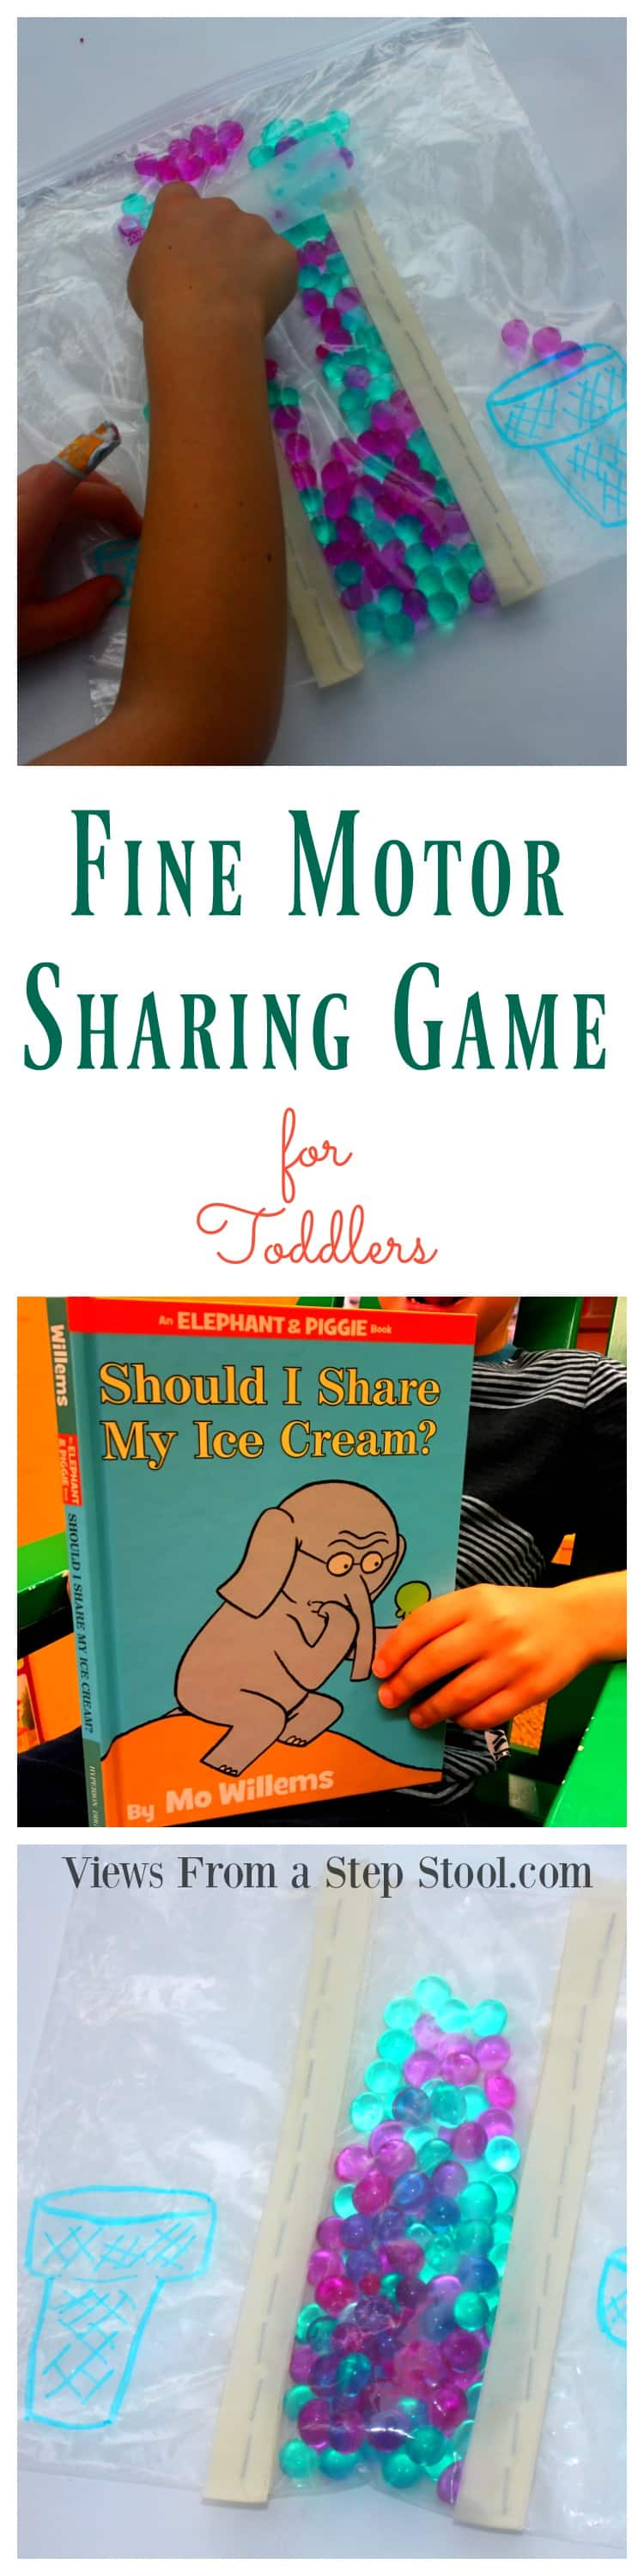 This fine motor sharing game for toddlers practices social skills through play, sharing & turn-taking. Based on the book, Should I Share My Ice Cream.